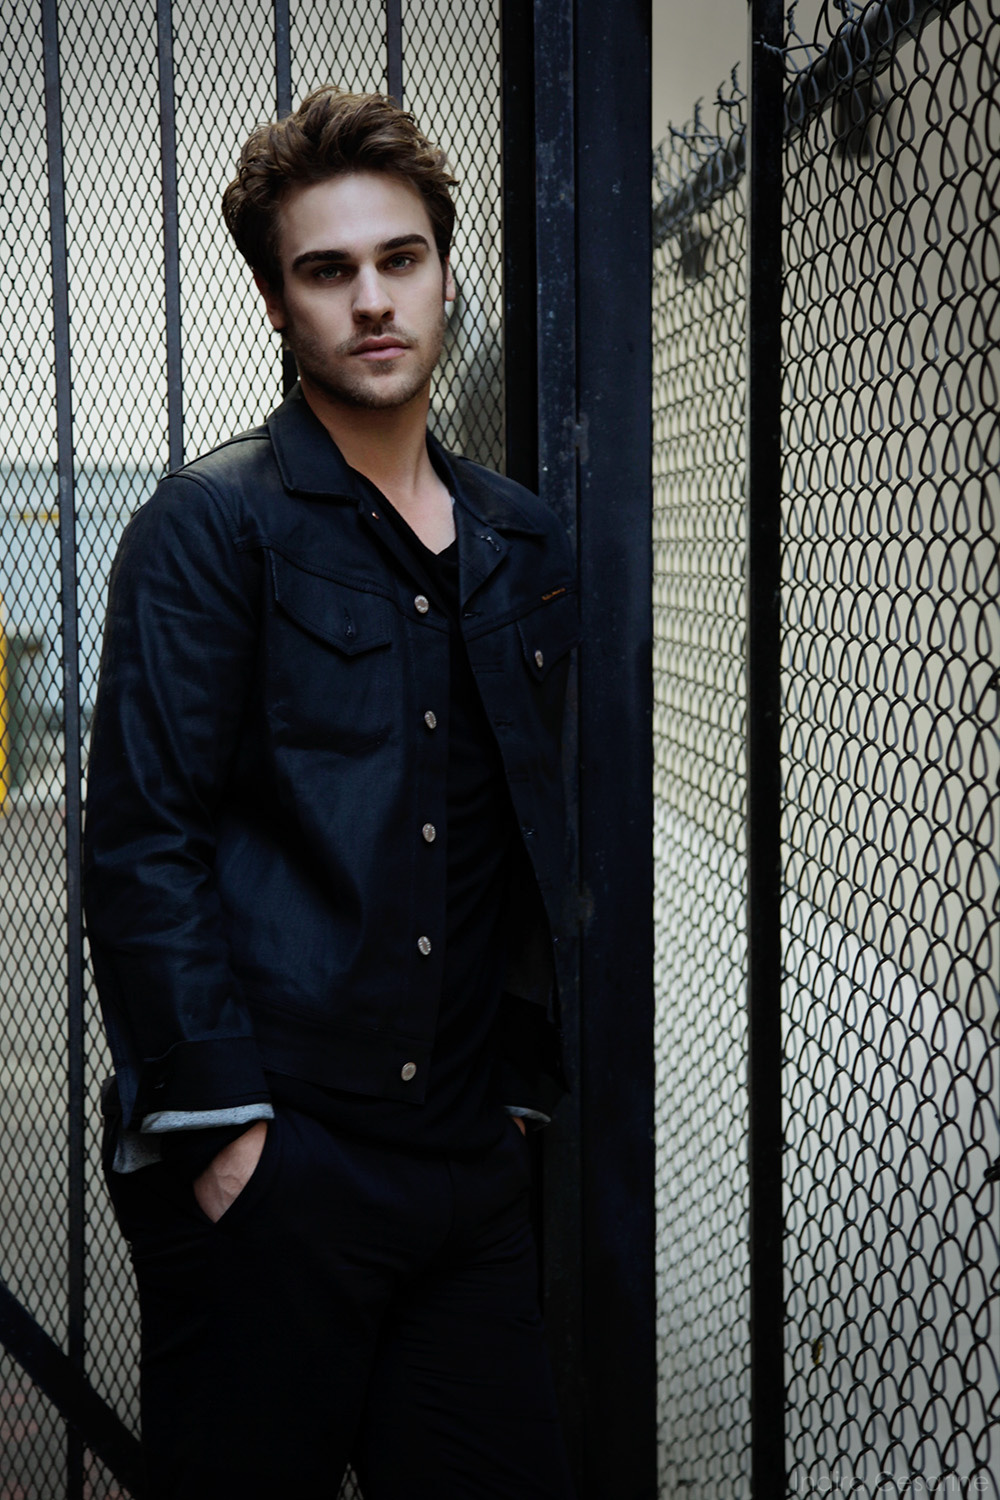 Grey-Damon-Photography-by-Indira-Cesarine-001.jpg